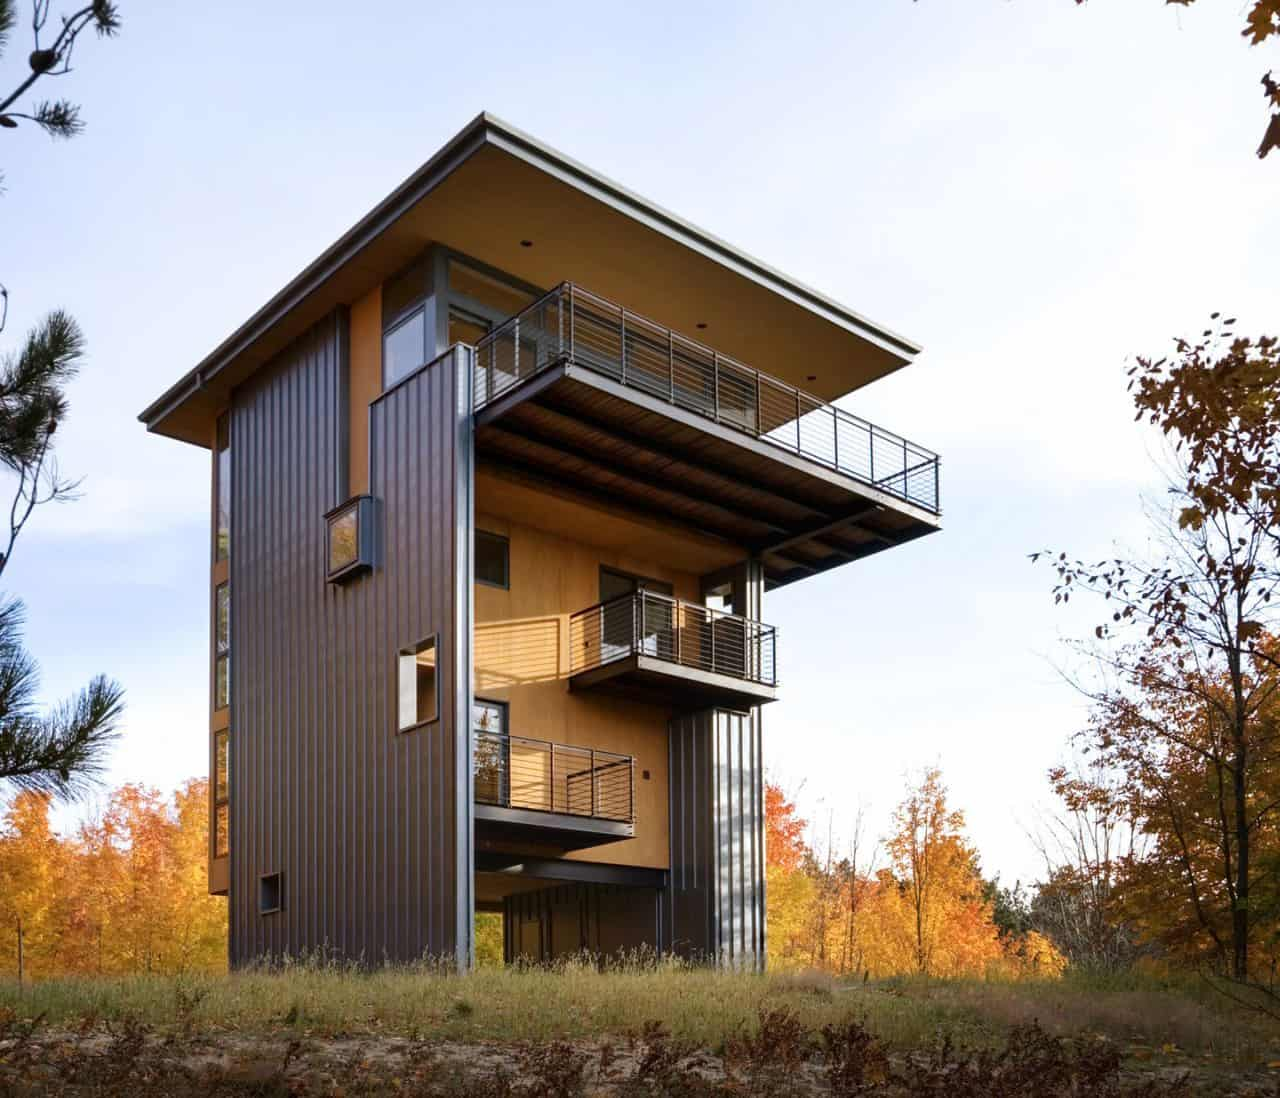 Home Design Ideas Architecture: 4-Storey Tall House Reaches Above The Forest To See The Lake